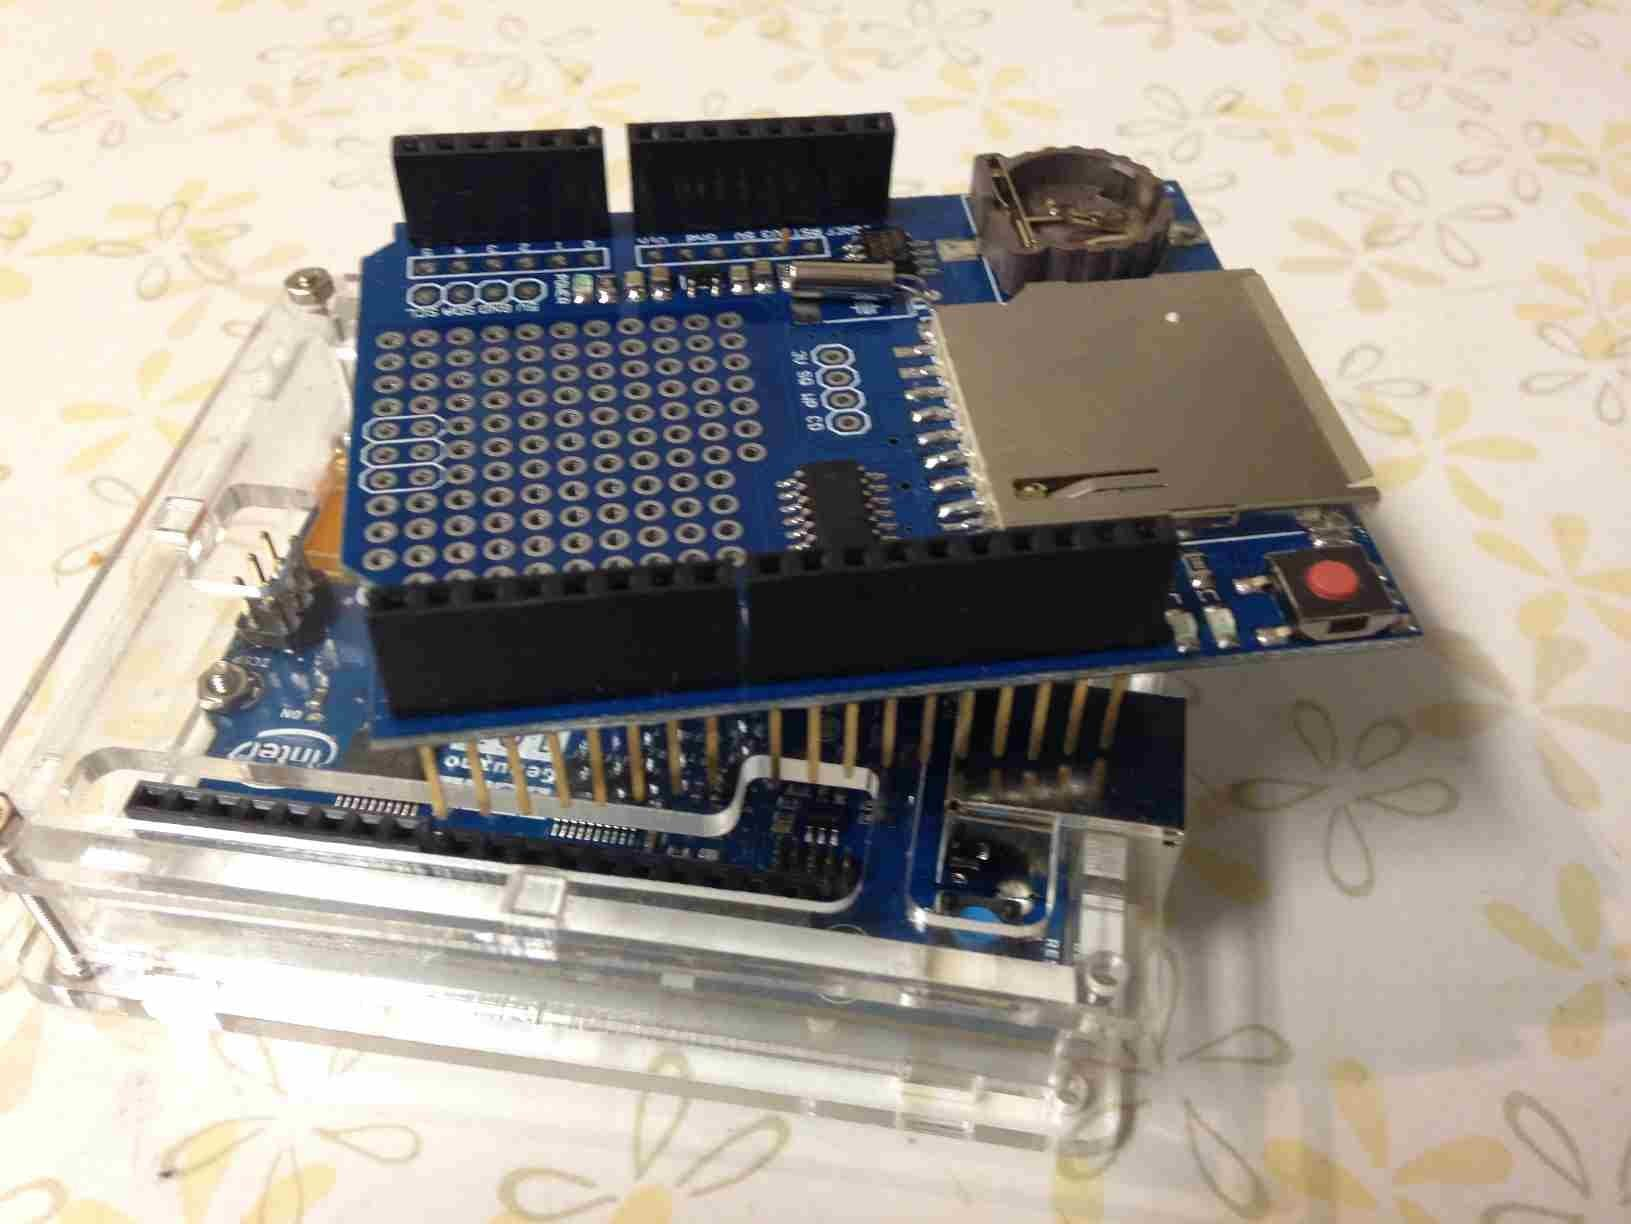 The Intel Arduino 101 Hardware Neural Network with MNIST